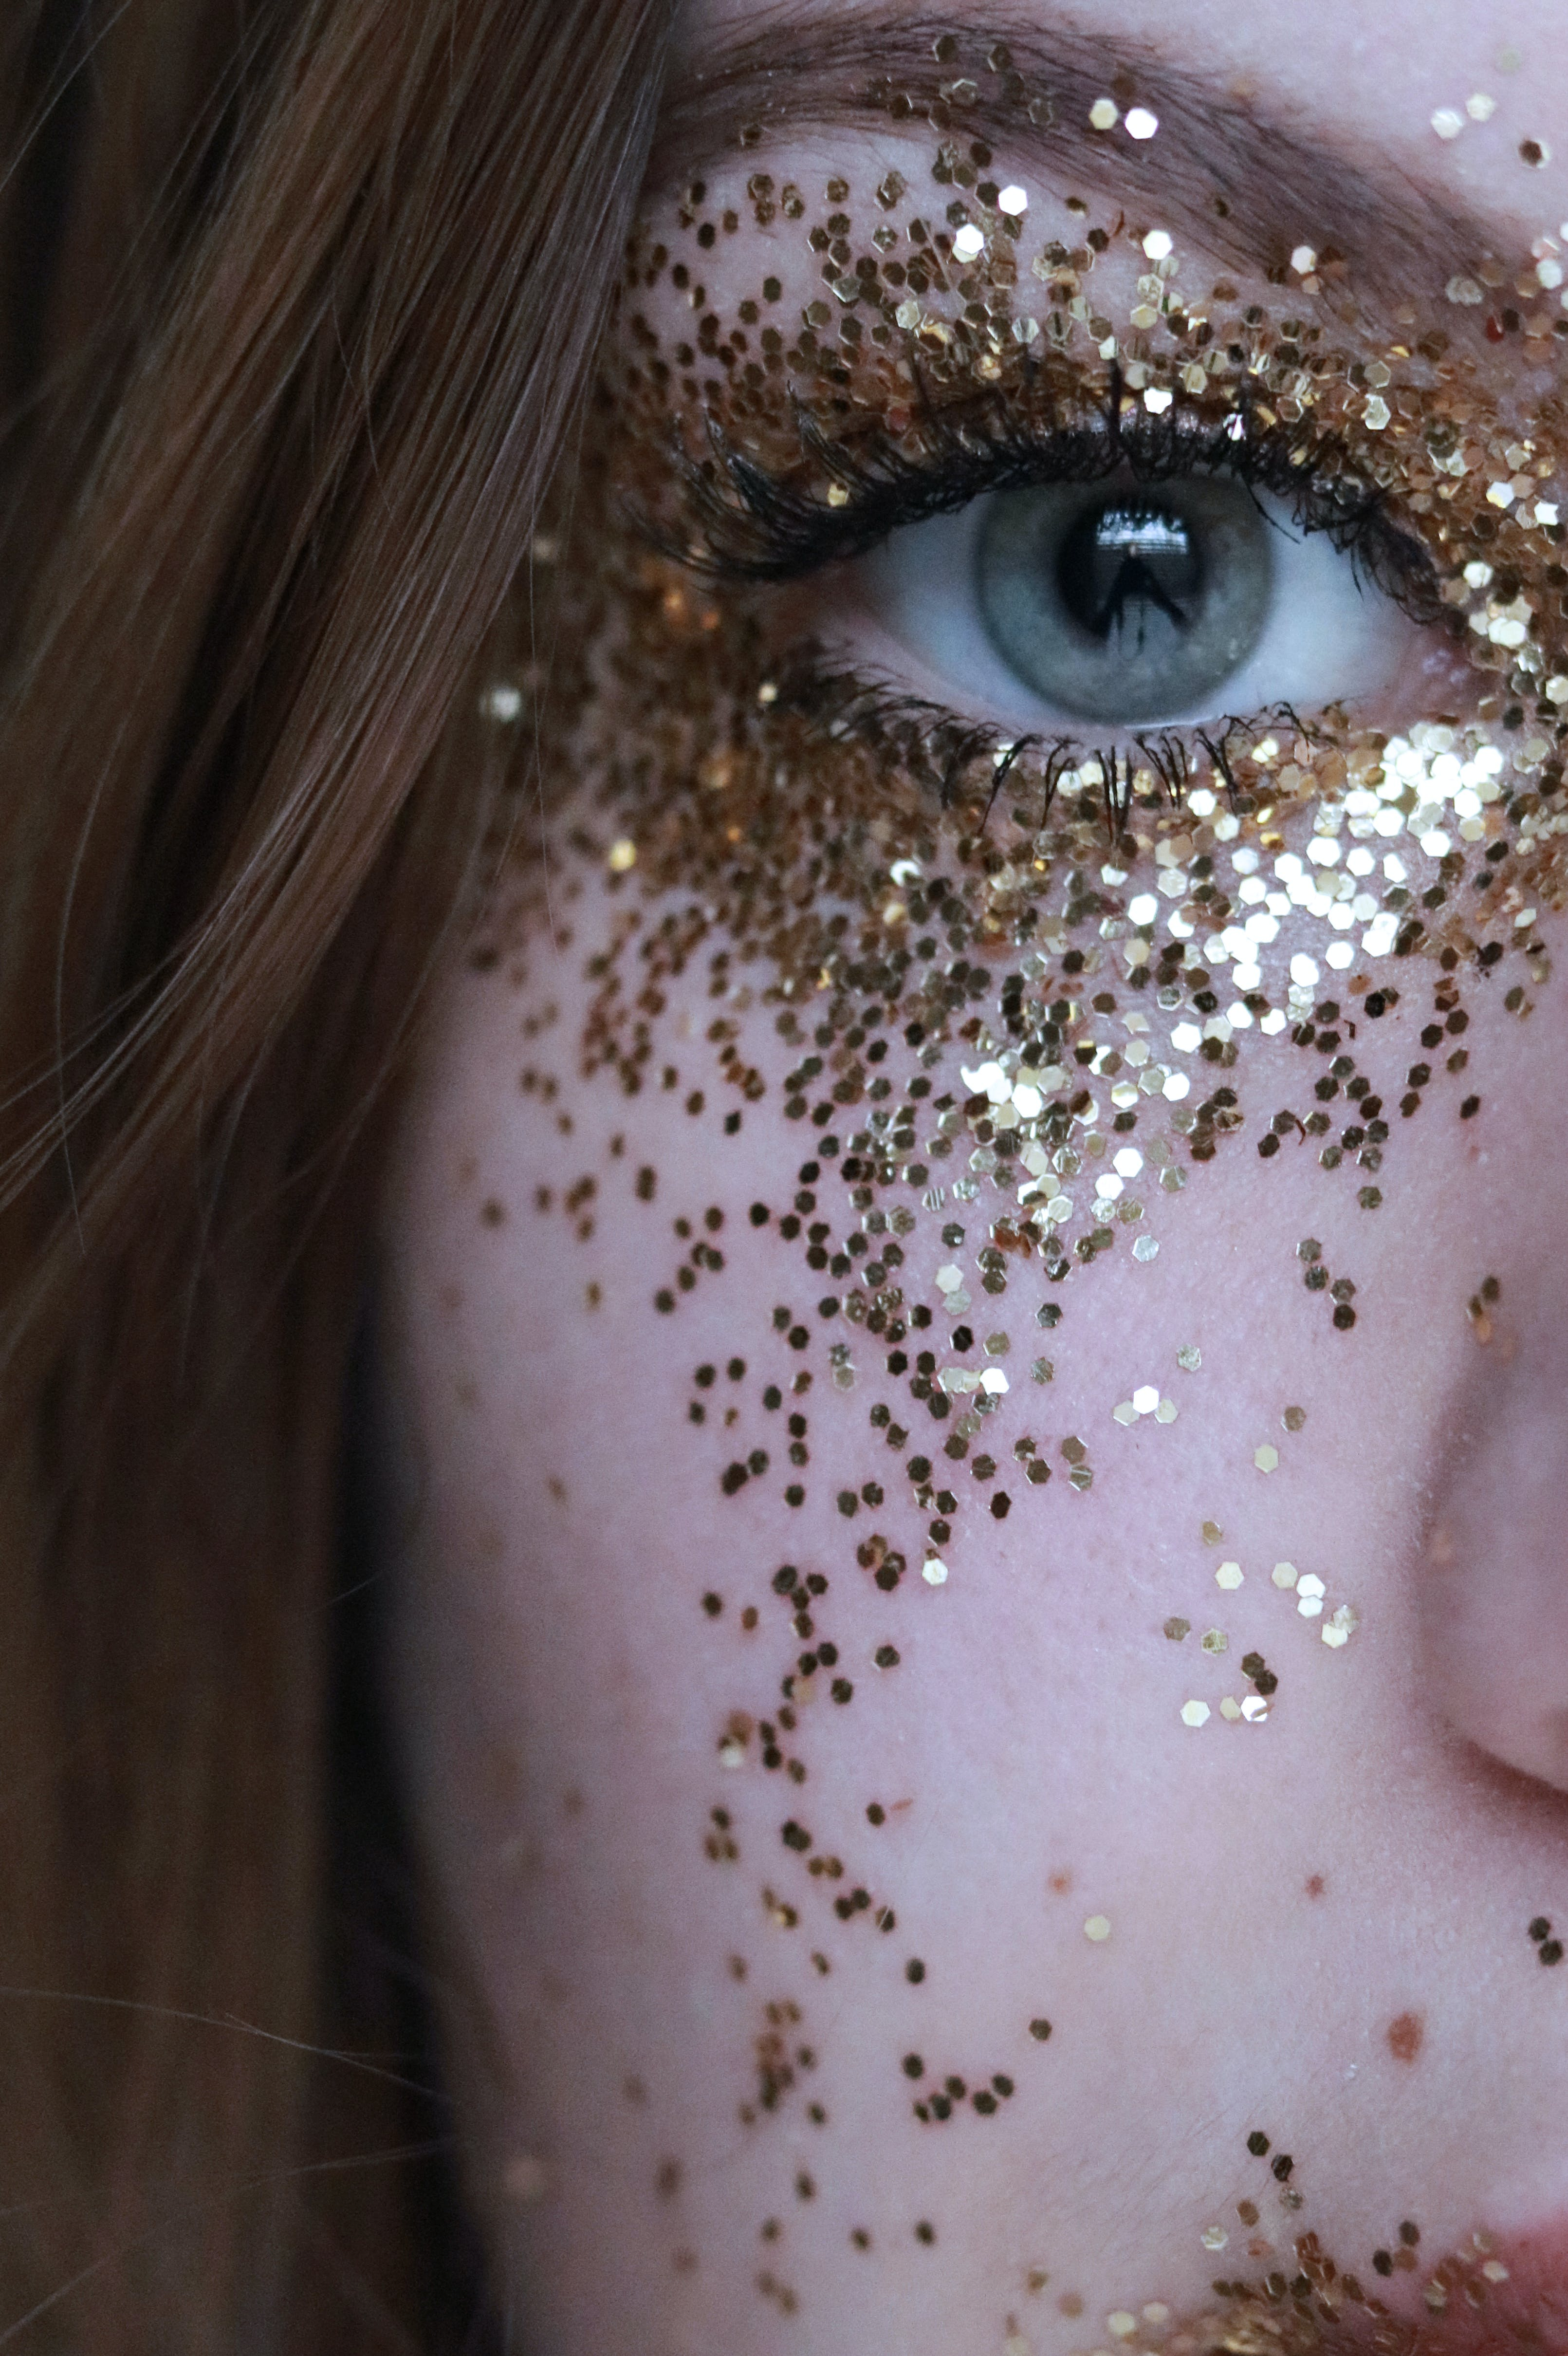 Close-Up Photo of Woman With Gold Glitters on Her Face